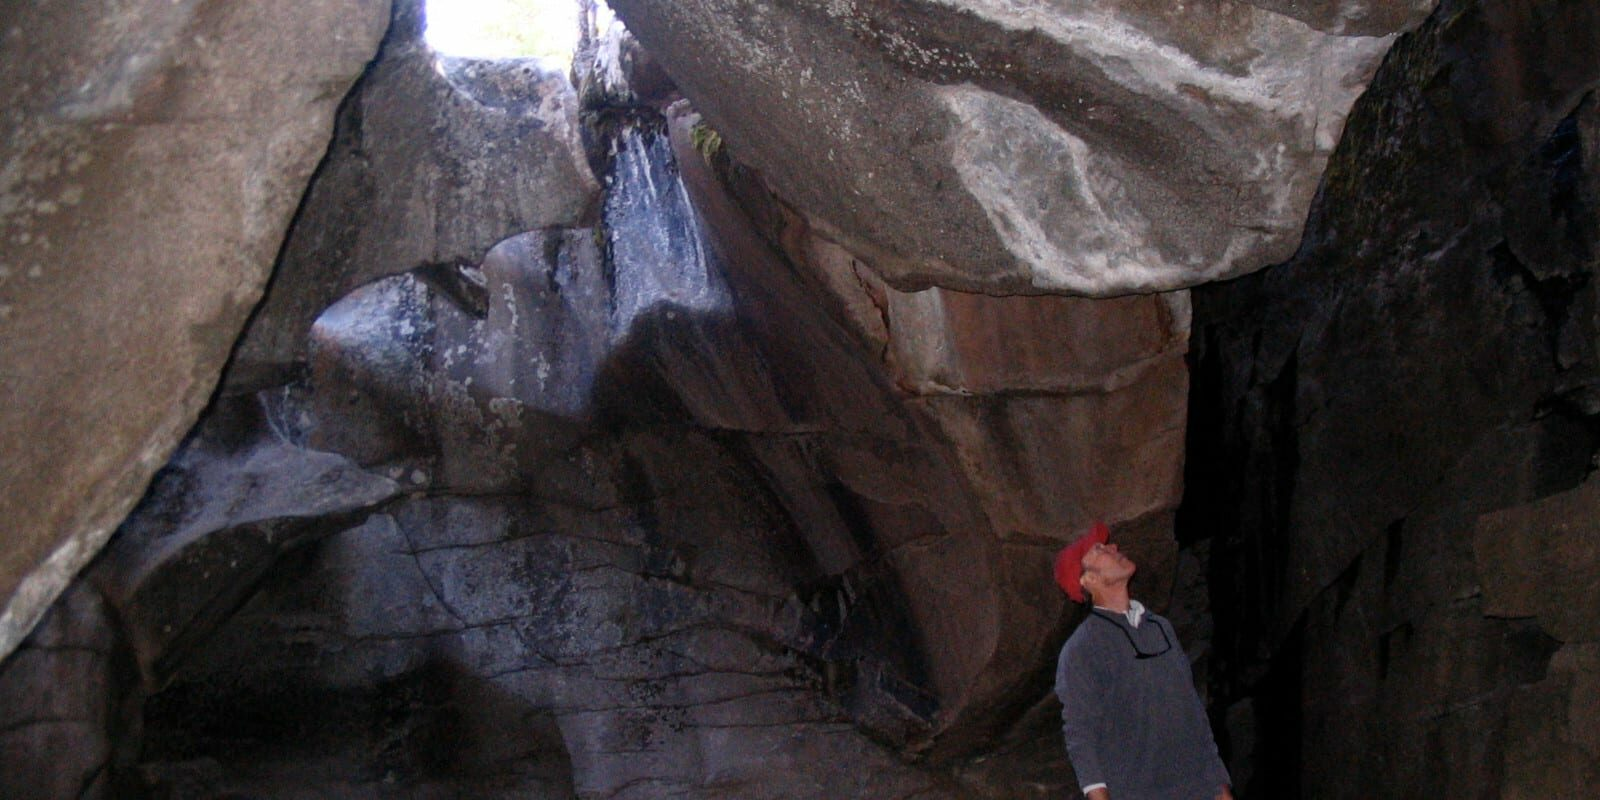 Image of a man in a cavern on the Grottos Trail in Aspen, Colorado